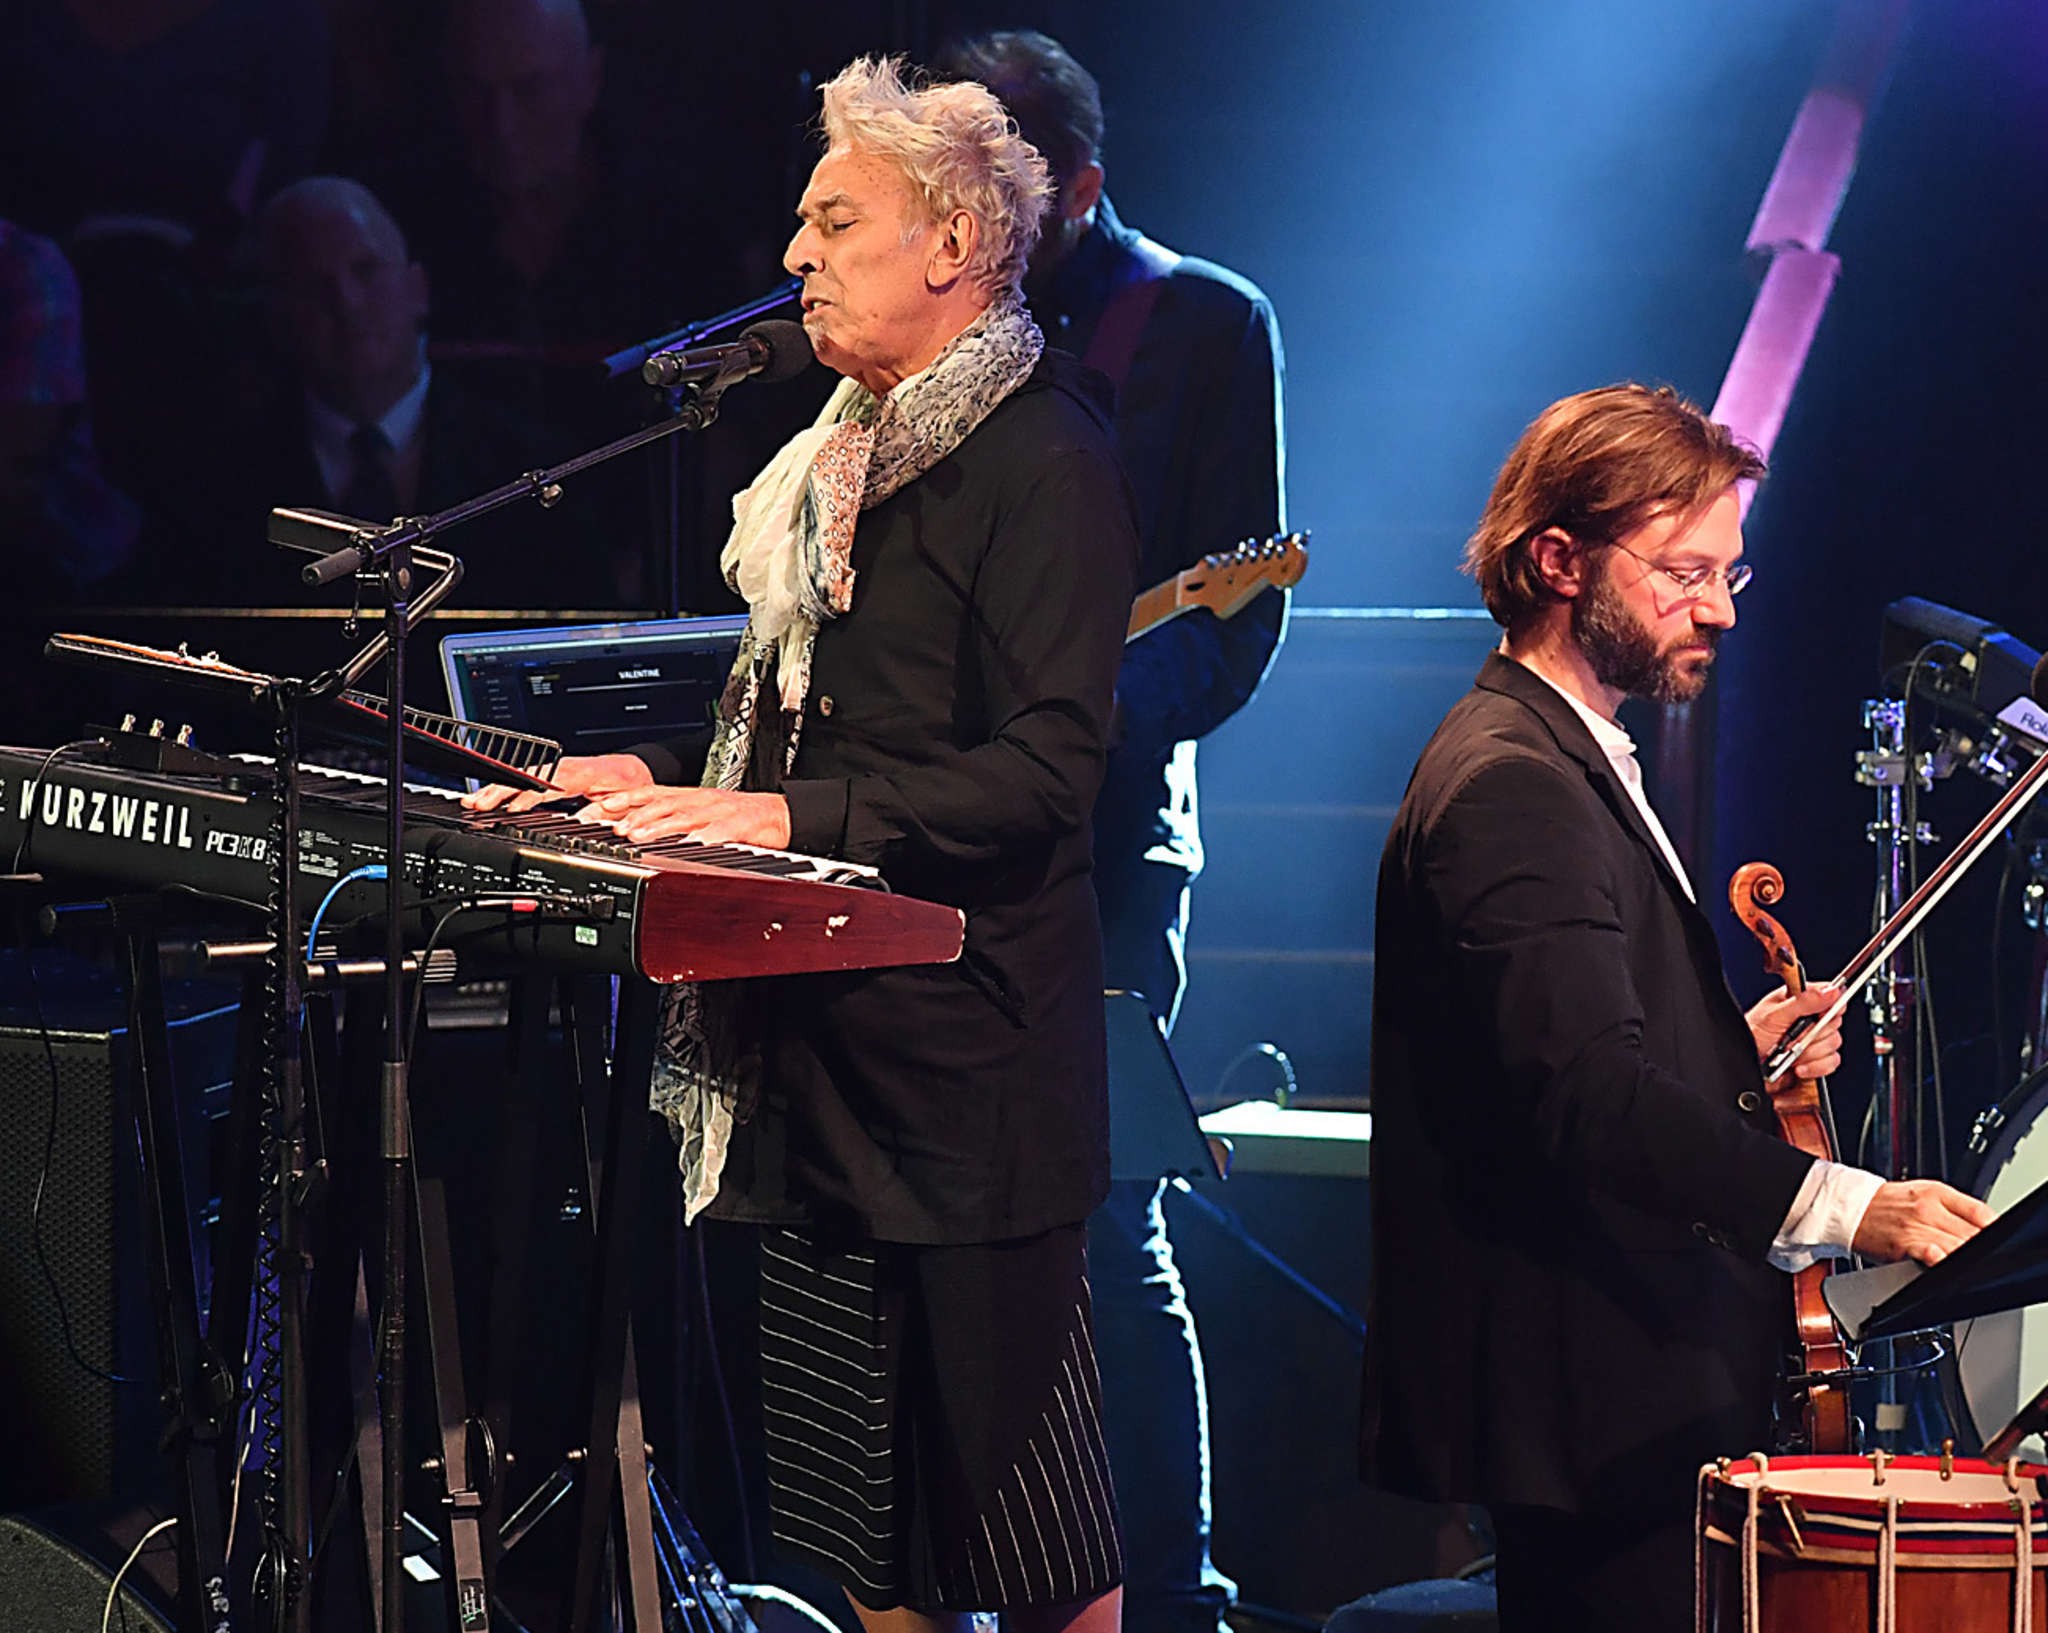 John Cale (left) and André de Ridder perform David Bowie´s music at the Royal Albert Hall in London as part of the BBC Proms.